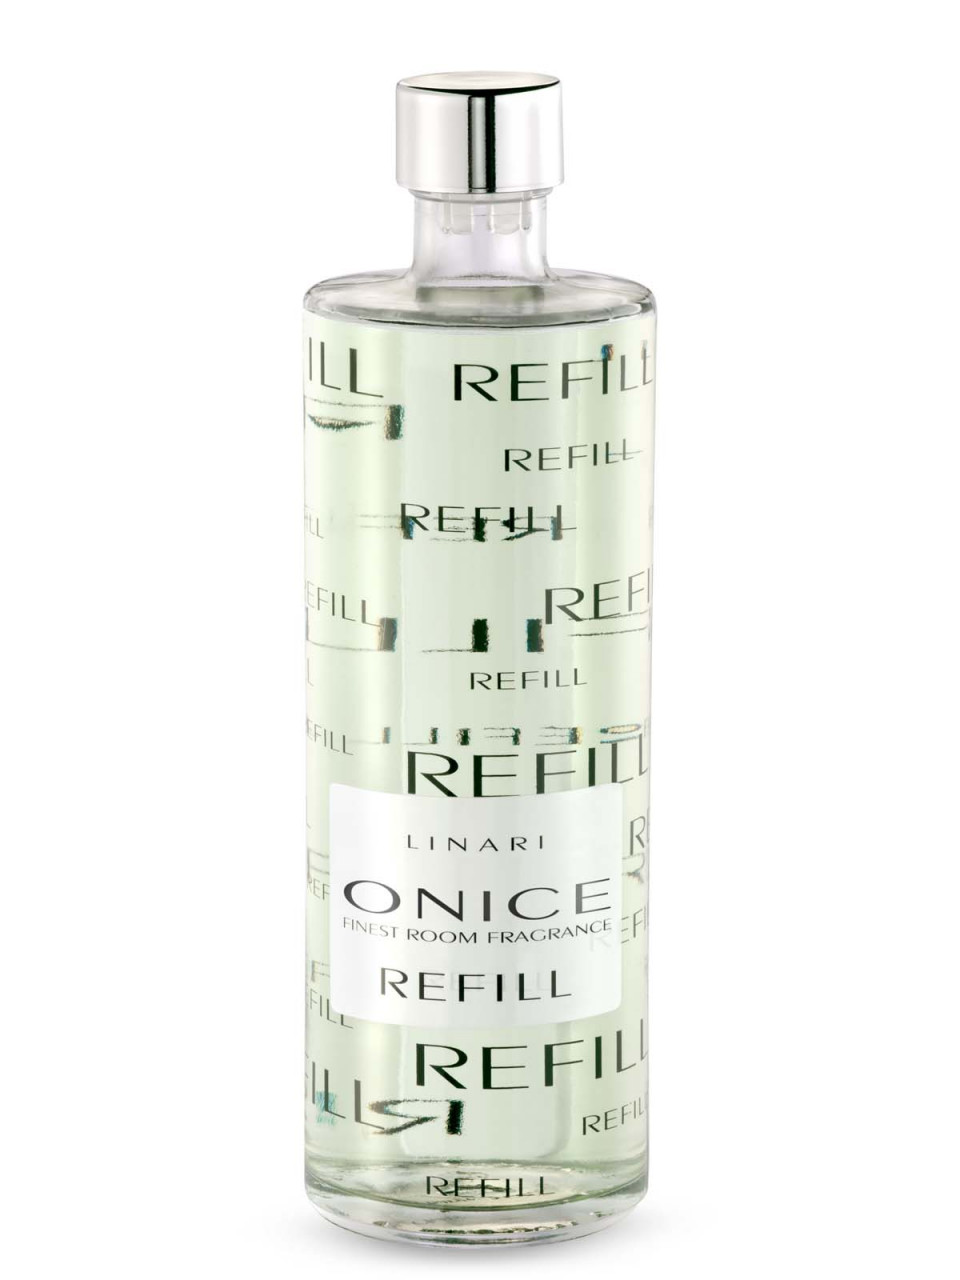 linari-finest-fragrances-diffusor-onice-refill-raumduft